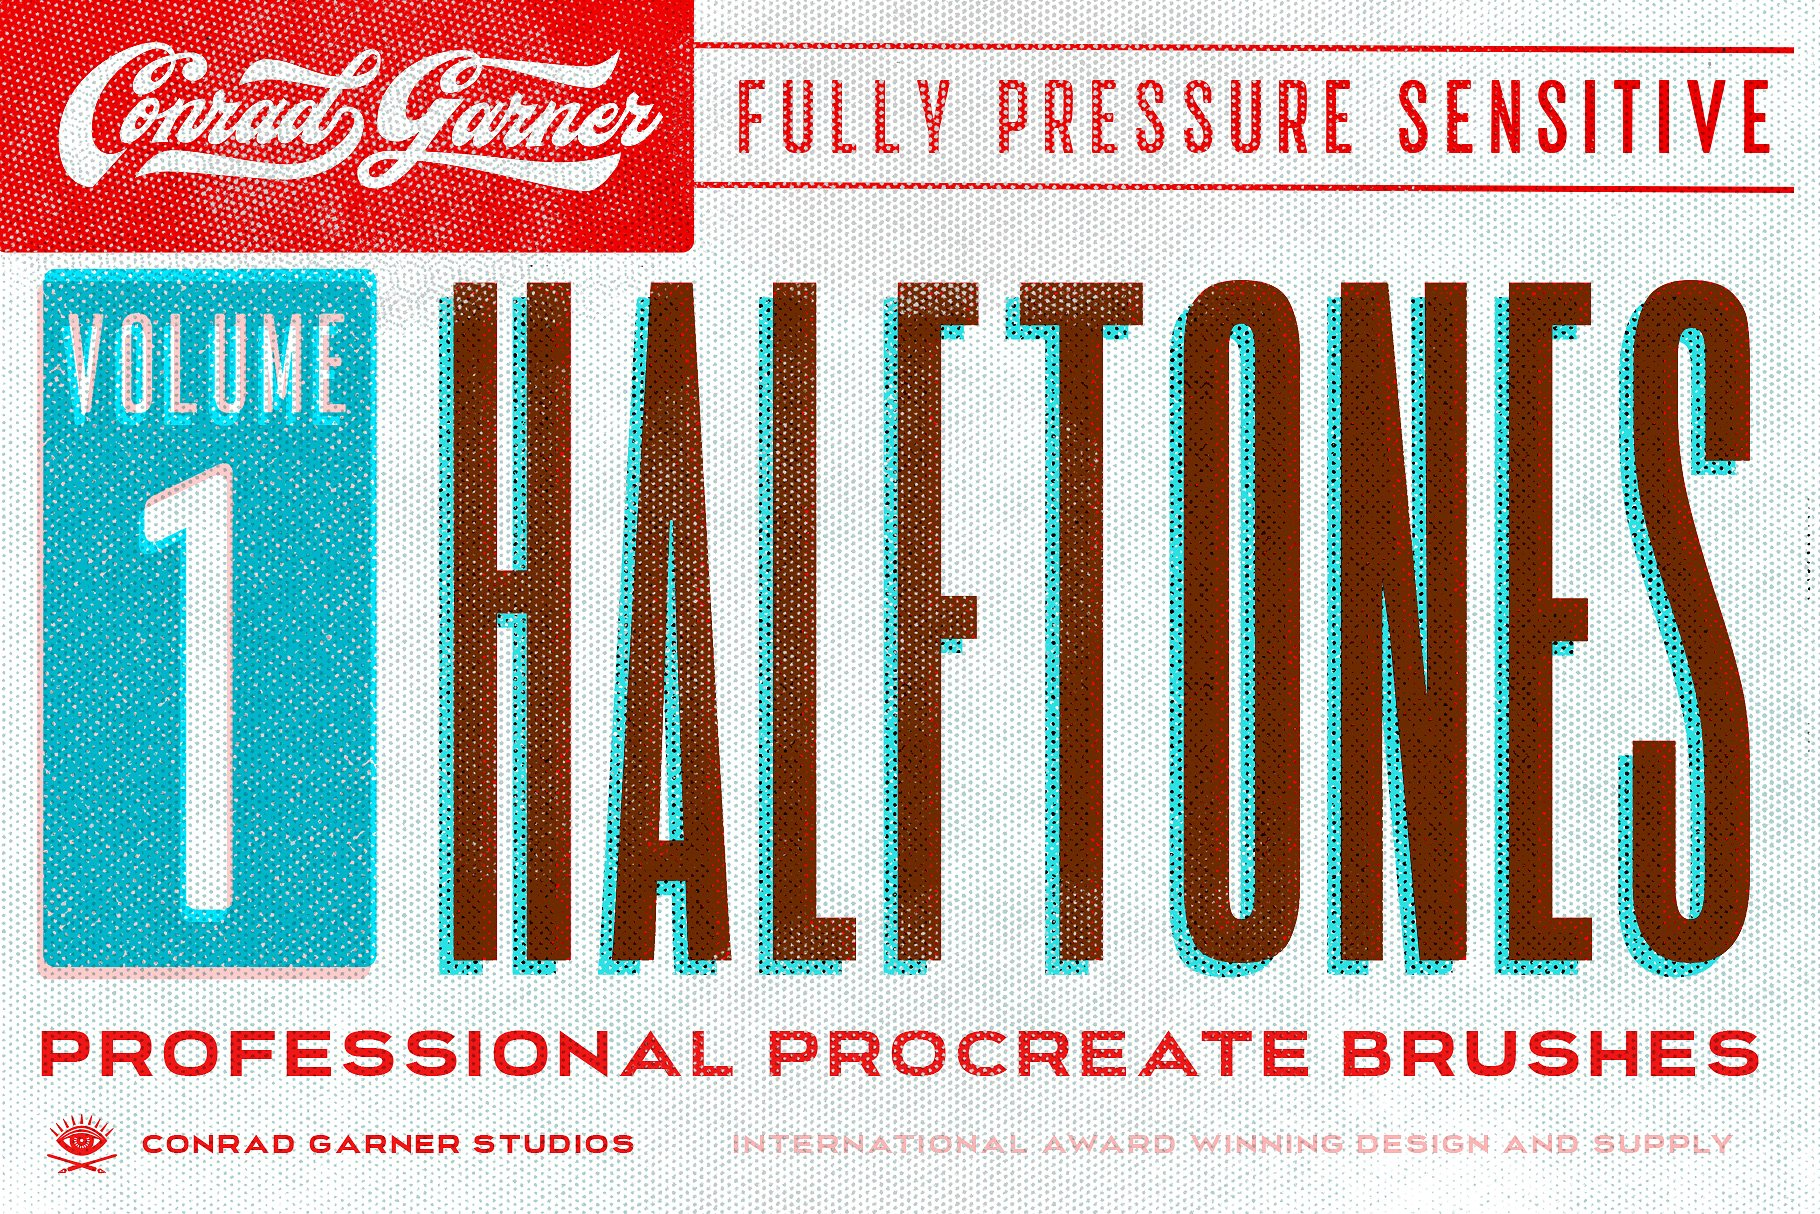 CGS_Halftone_PS_BRUSHES_title.jpg